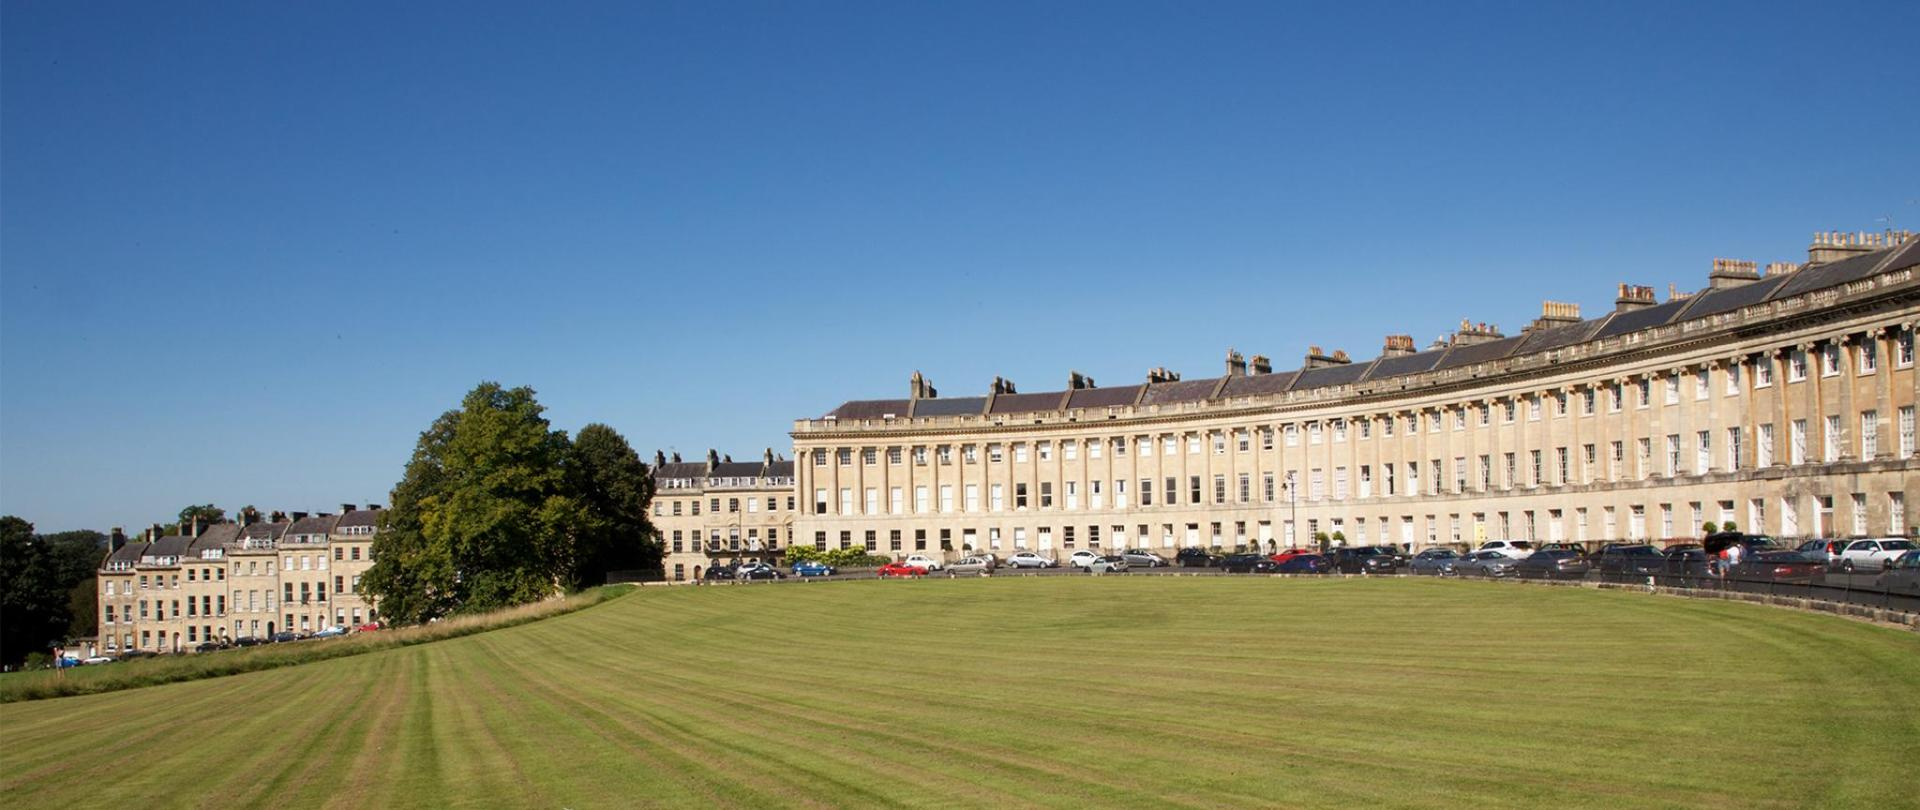 Royal-Crescent-and-lawn.jpg